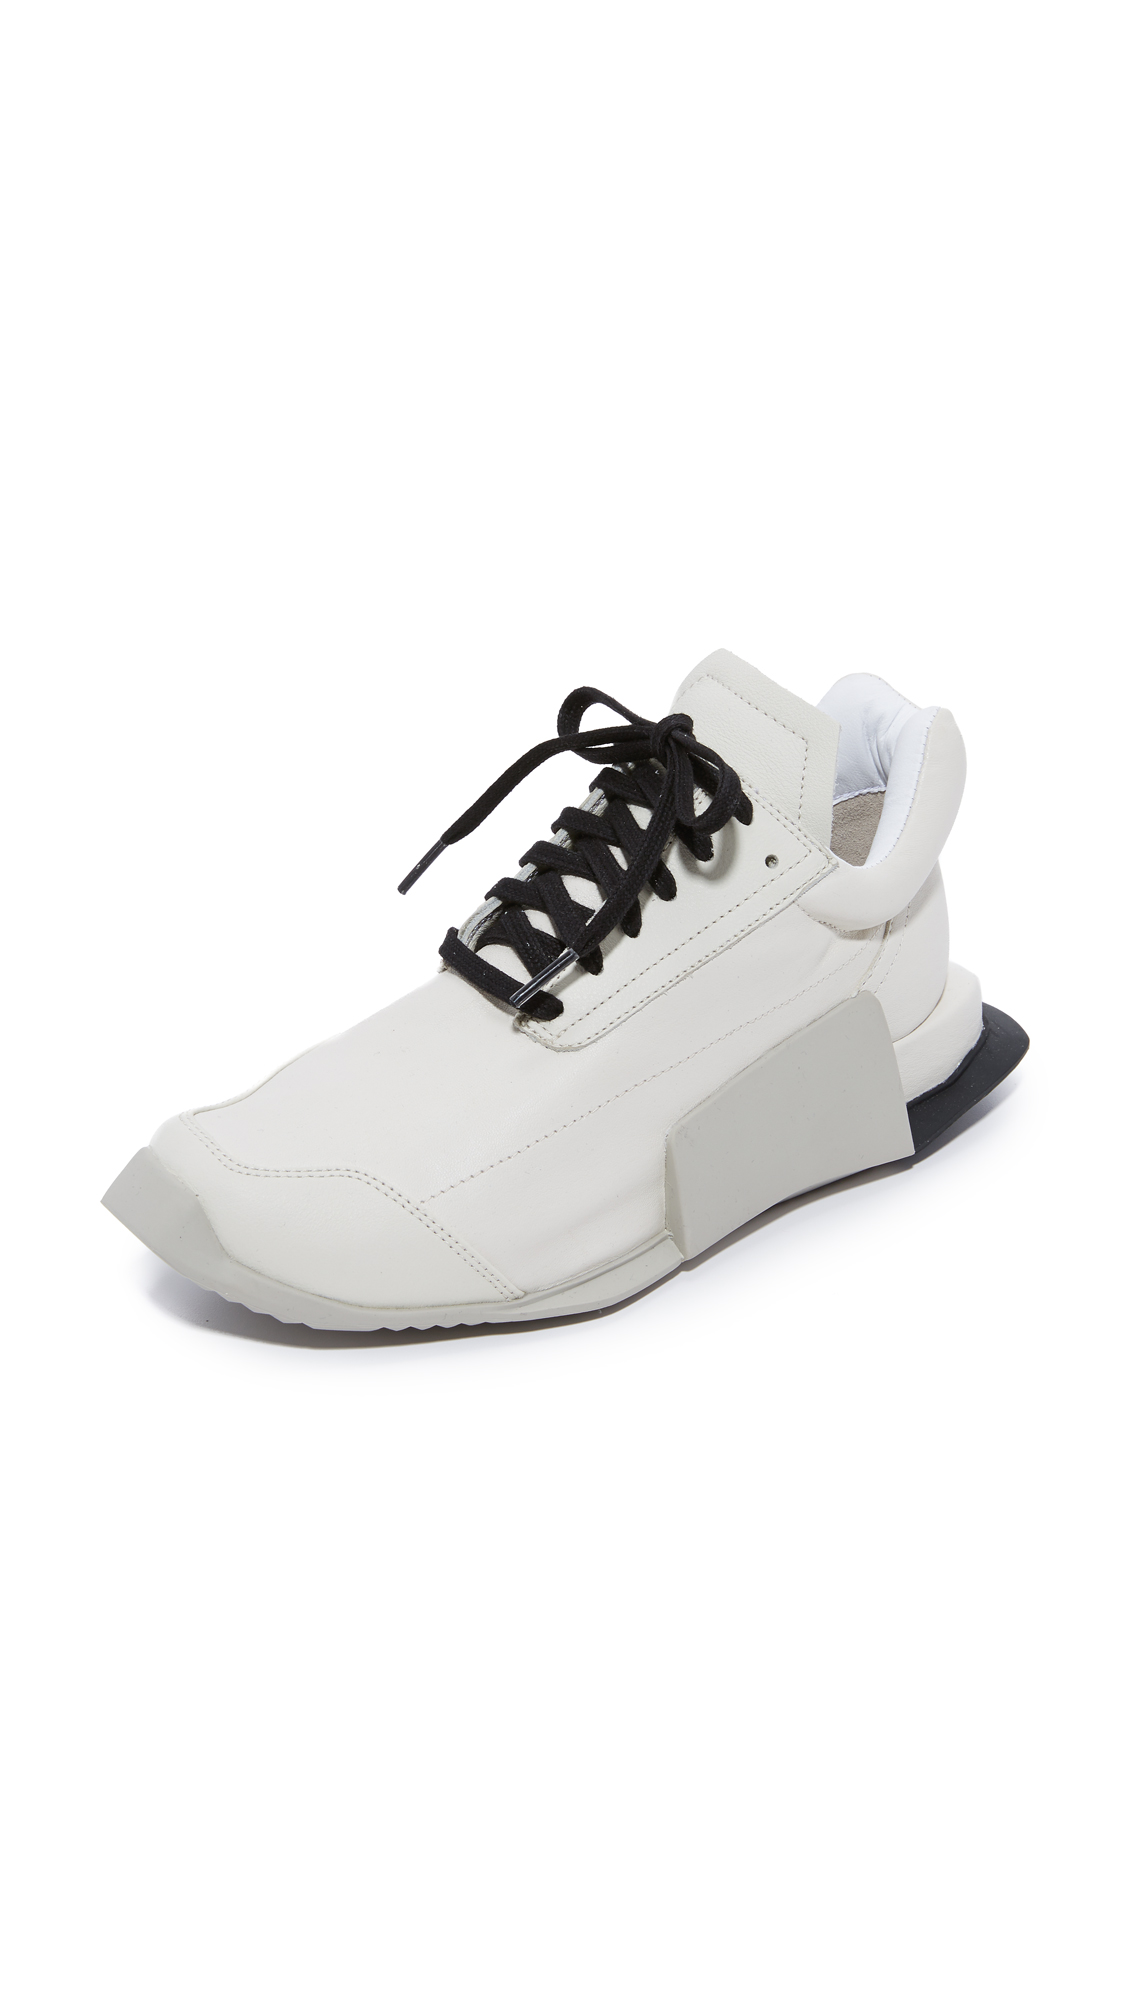 Photo of Adidas Adidas X Rick Owens Level Low Runners Milk-Dinge-Black - Adidas online